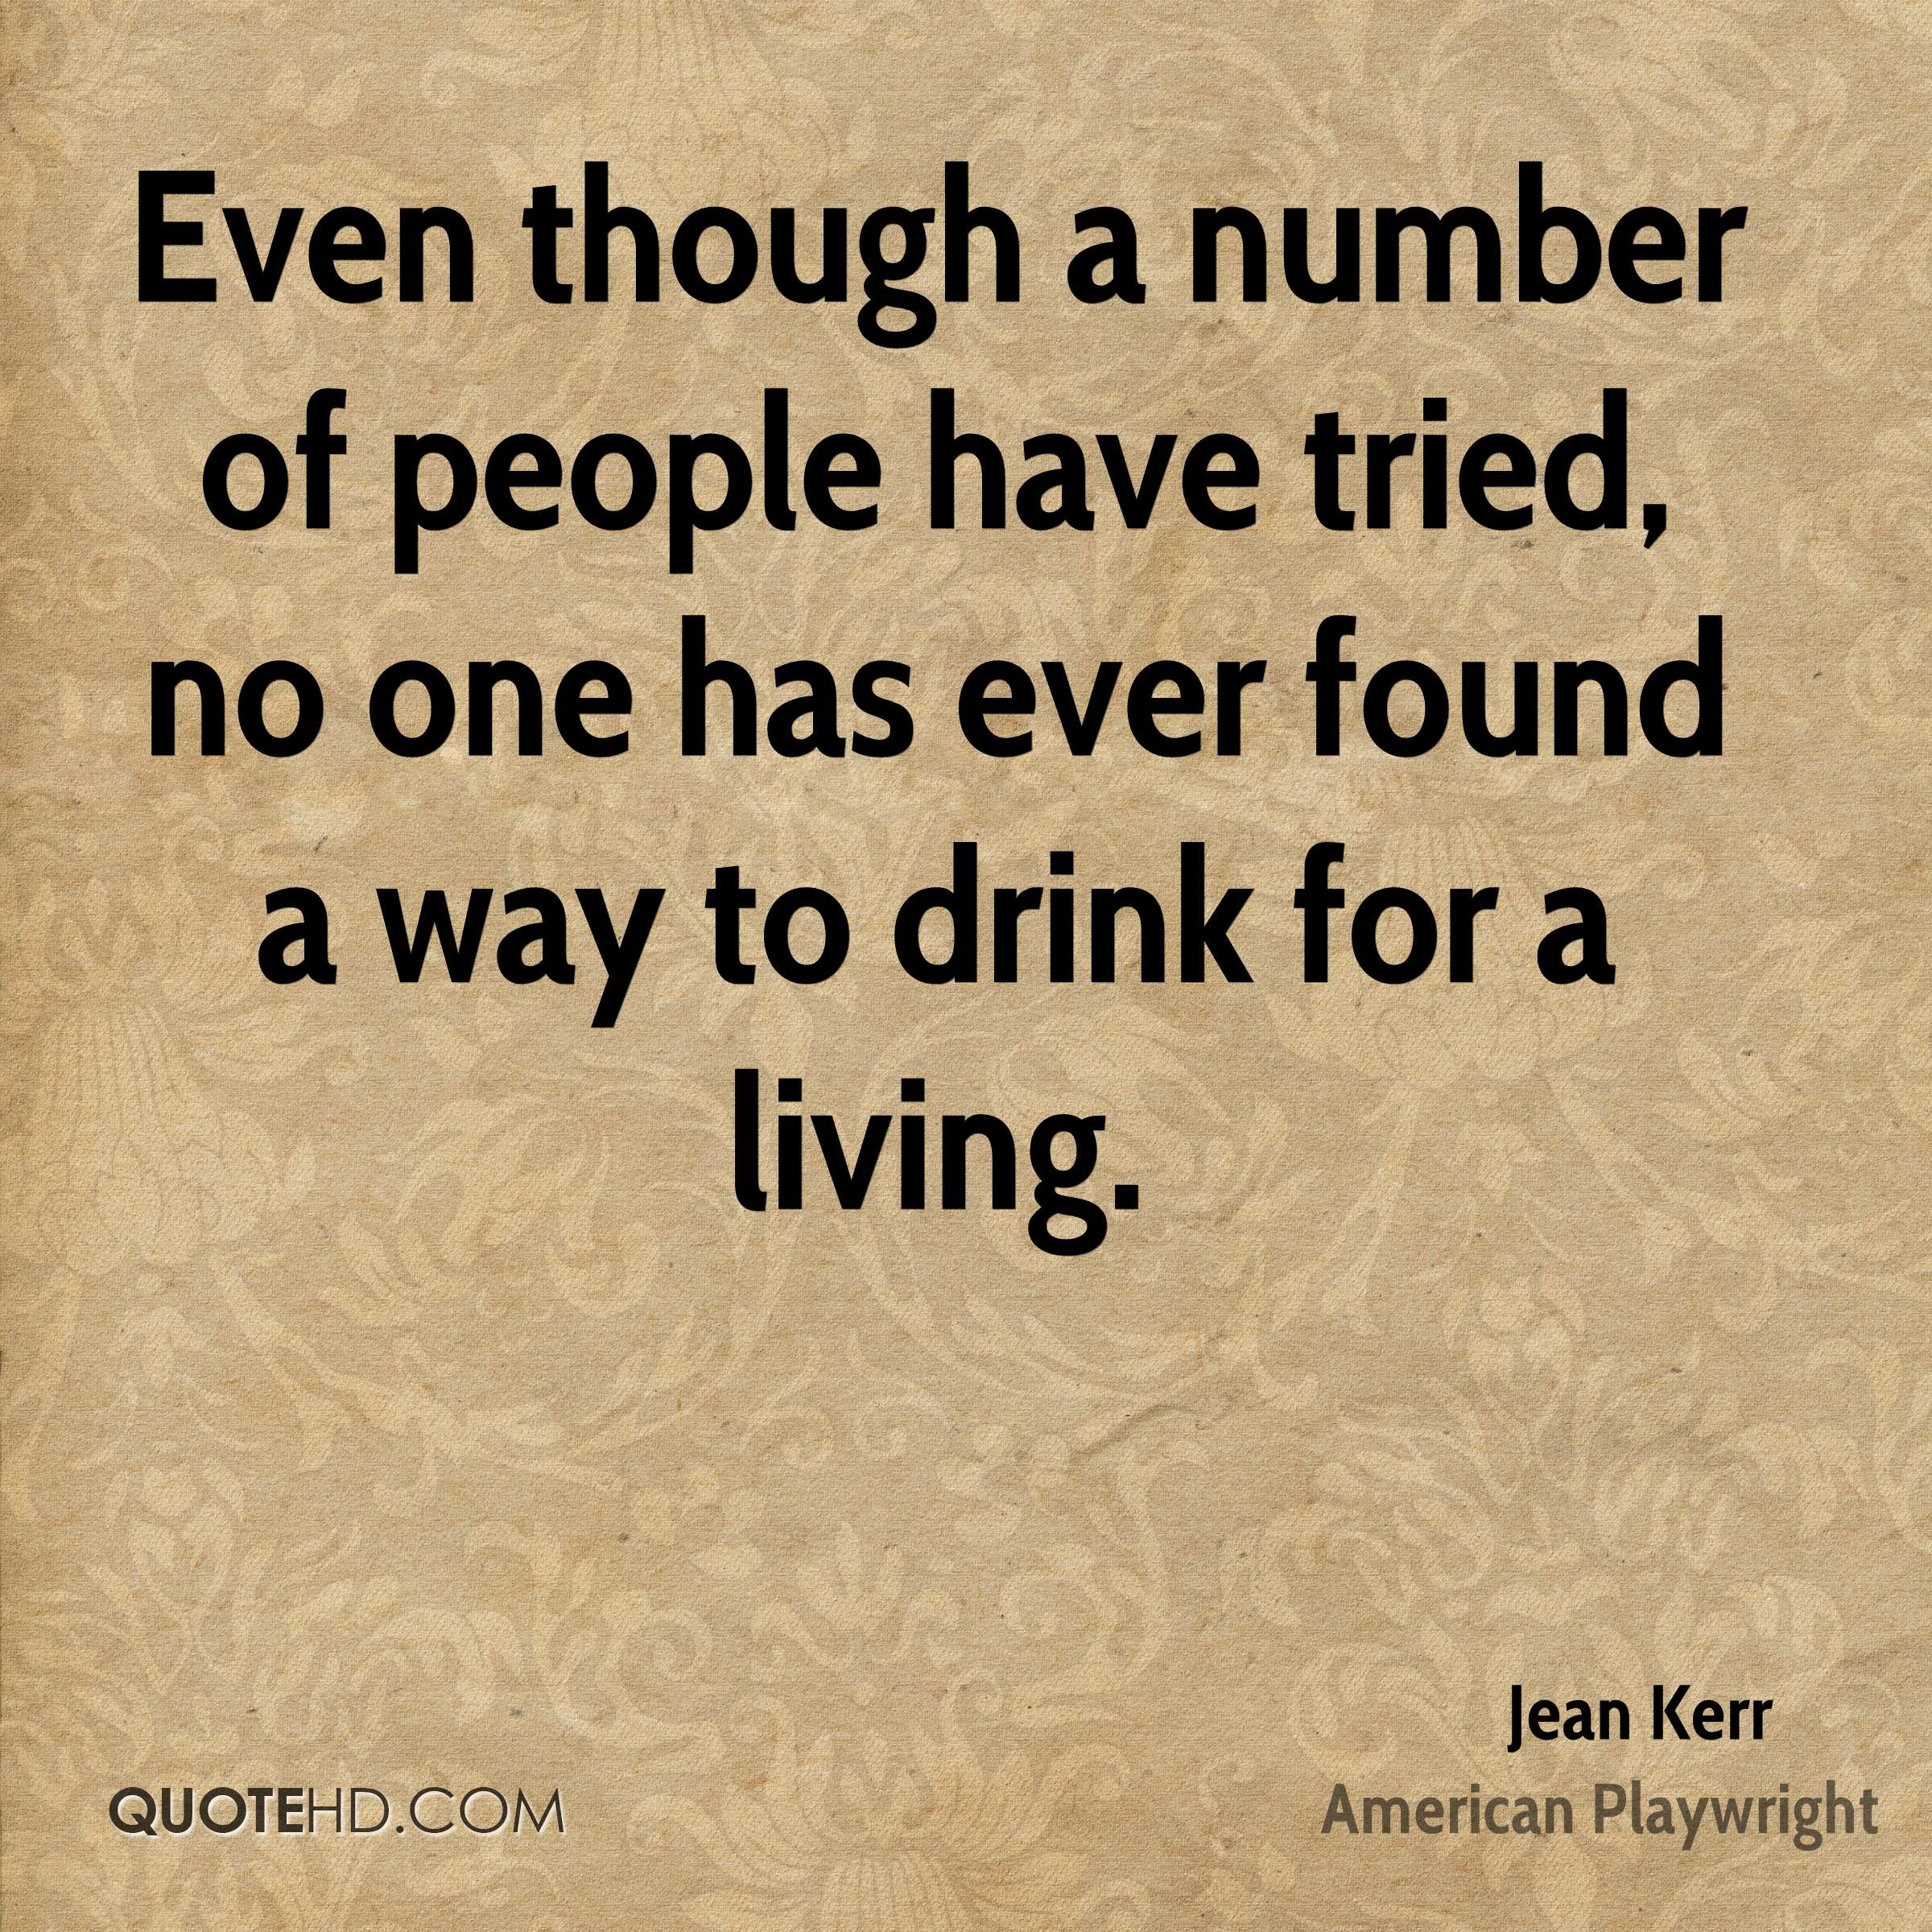 Even though a number of people have tried, no one has ever found a way to drink for a living.